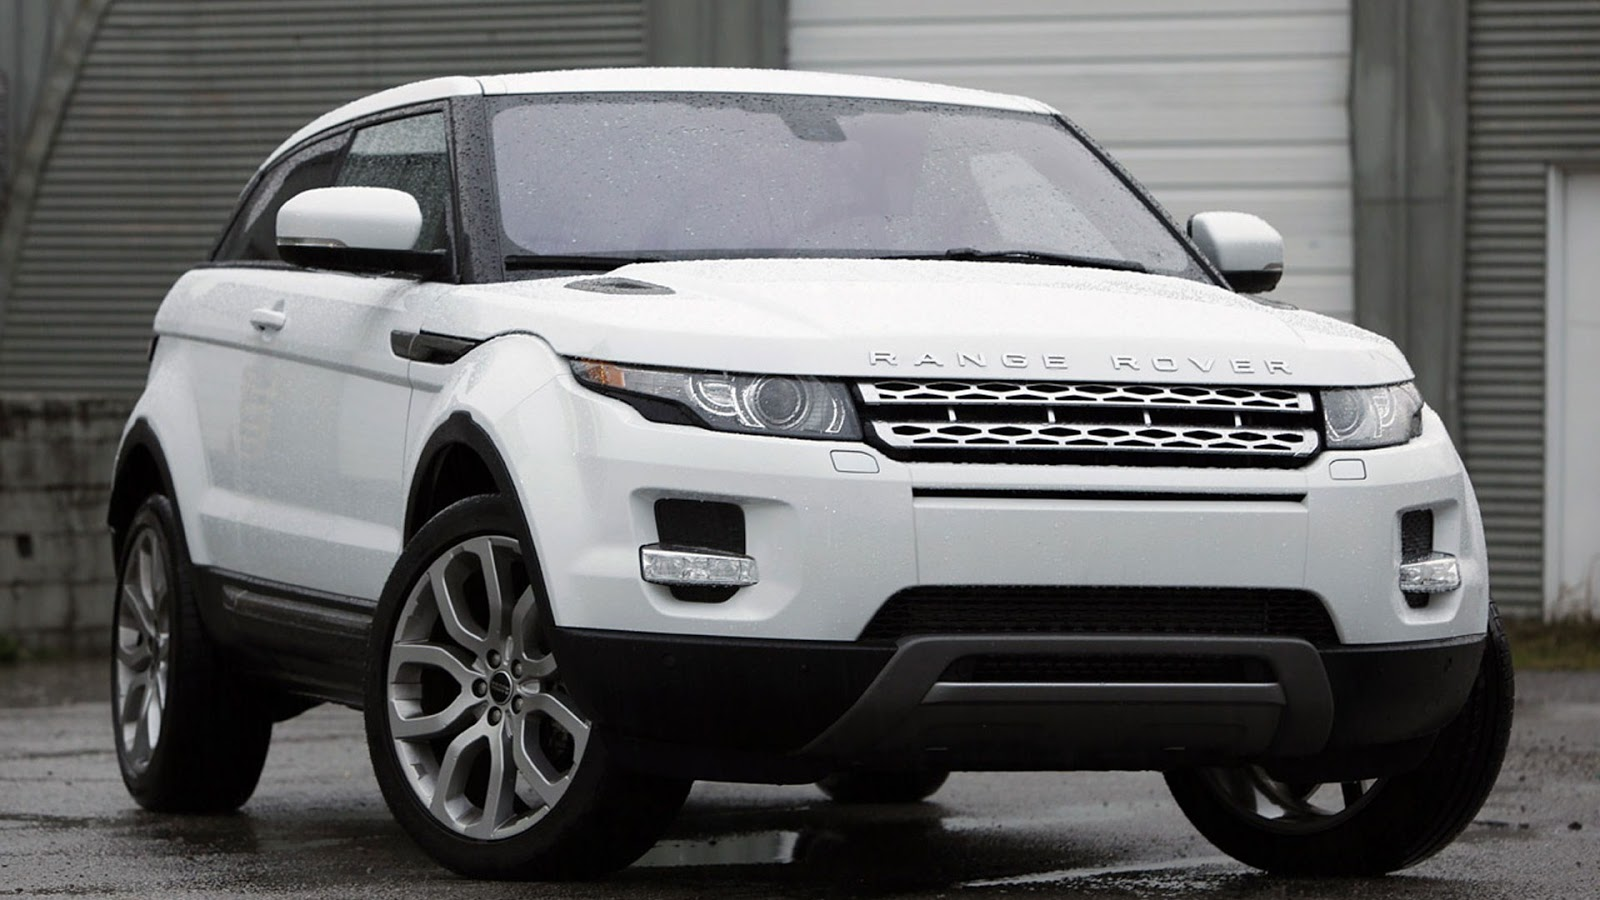 2014 range rover evoque sport car review auto emb. Black Bedroom Furniture Sets. Home Design Ideas